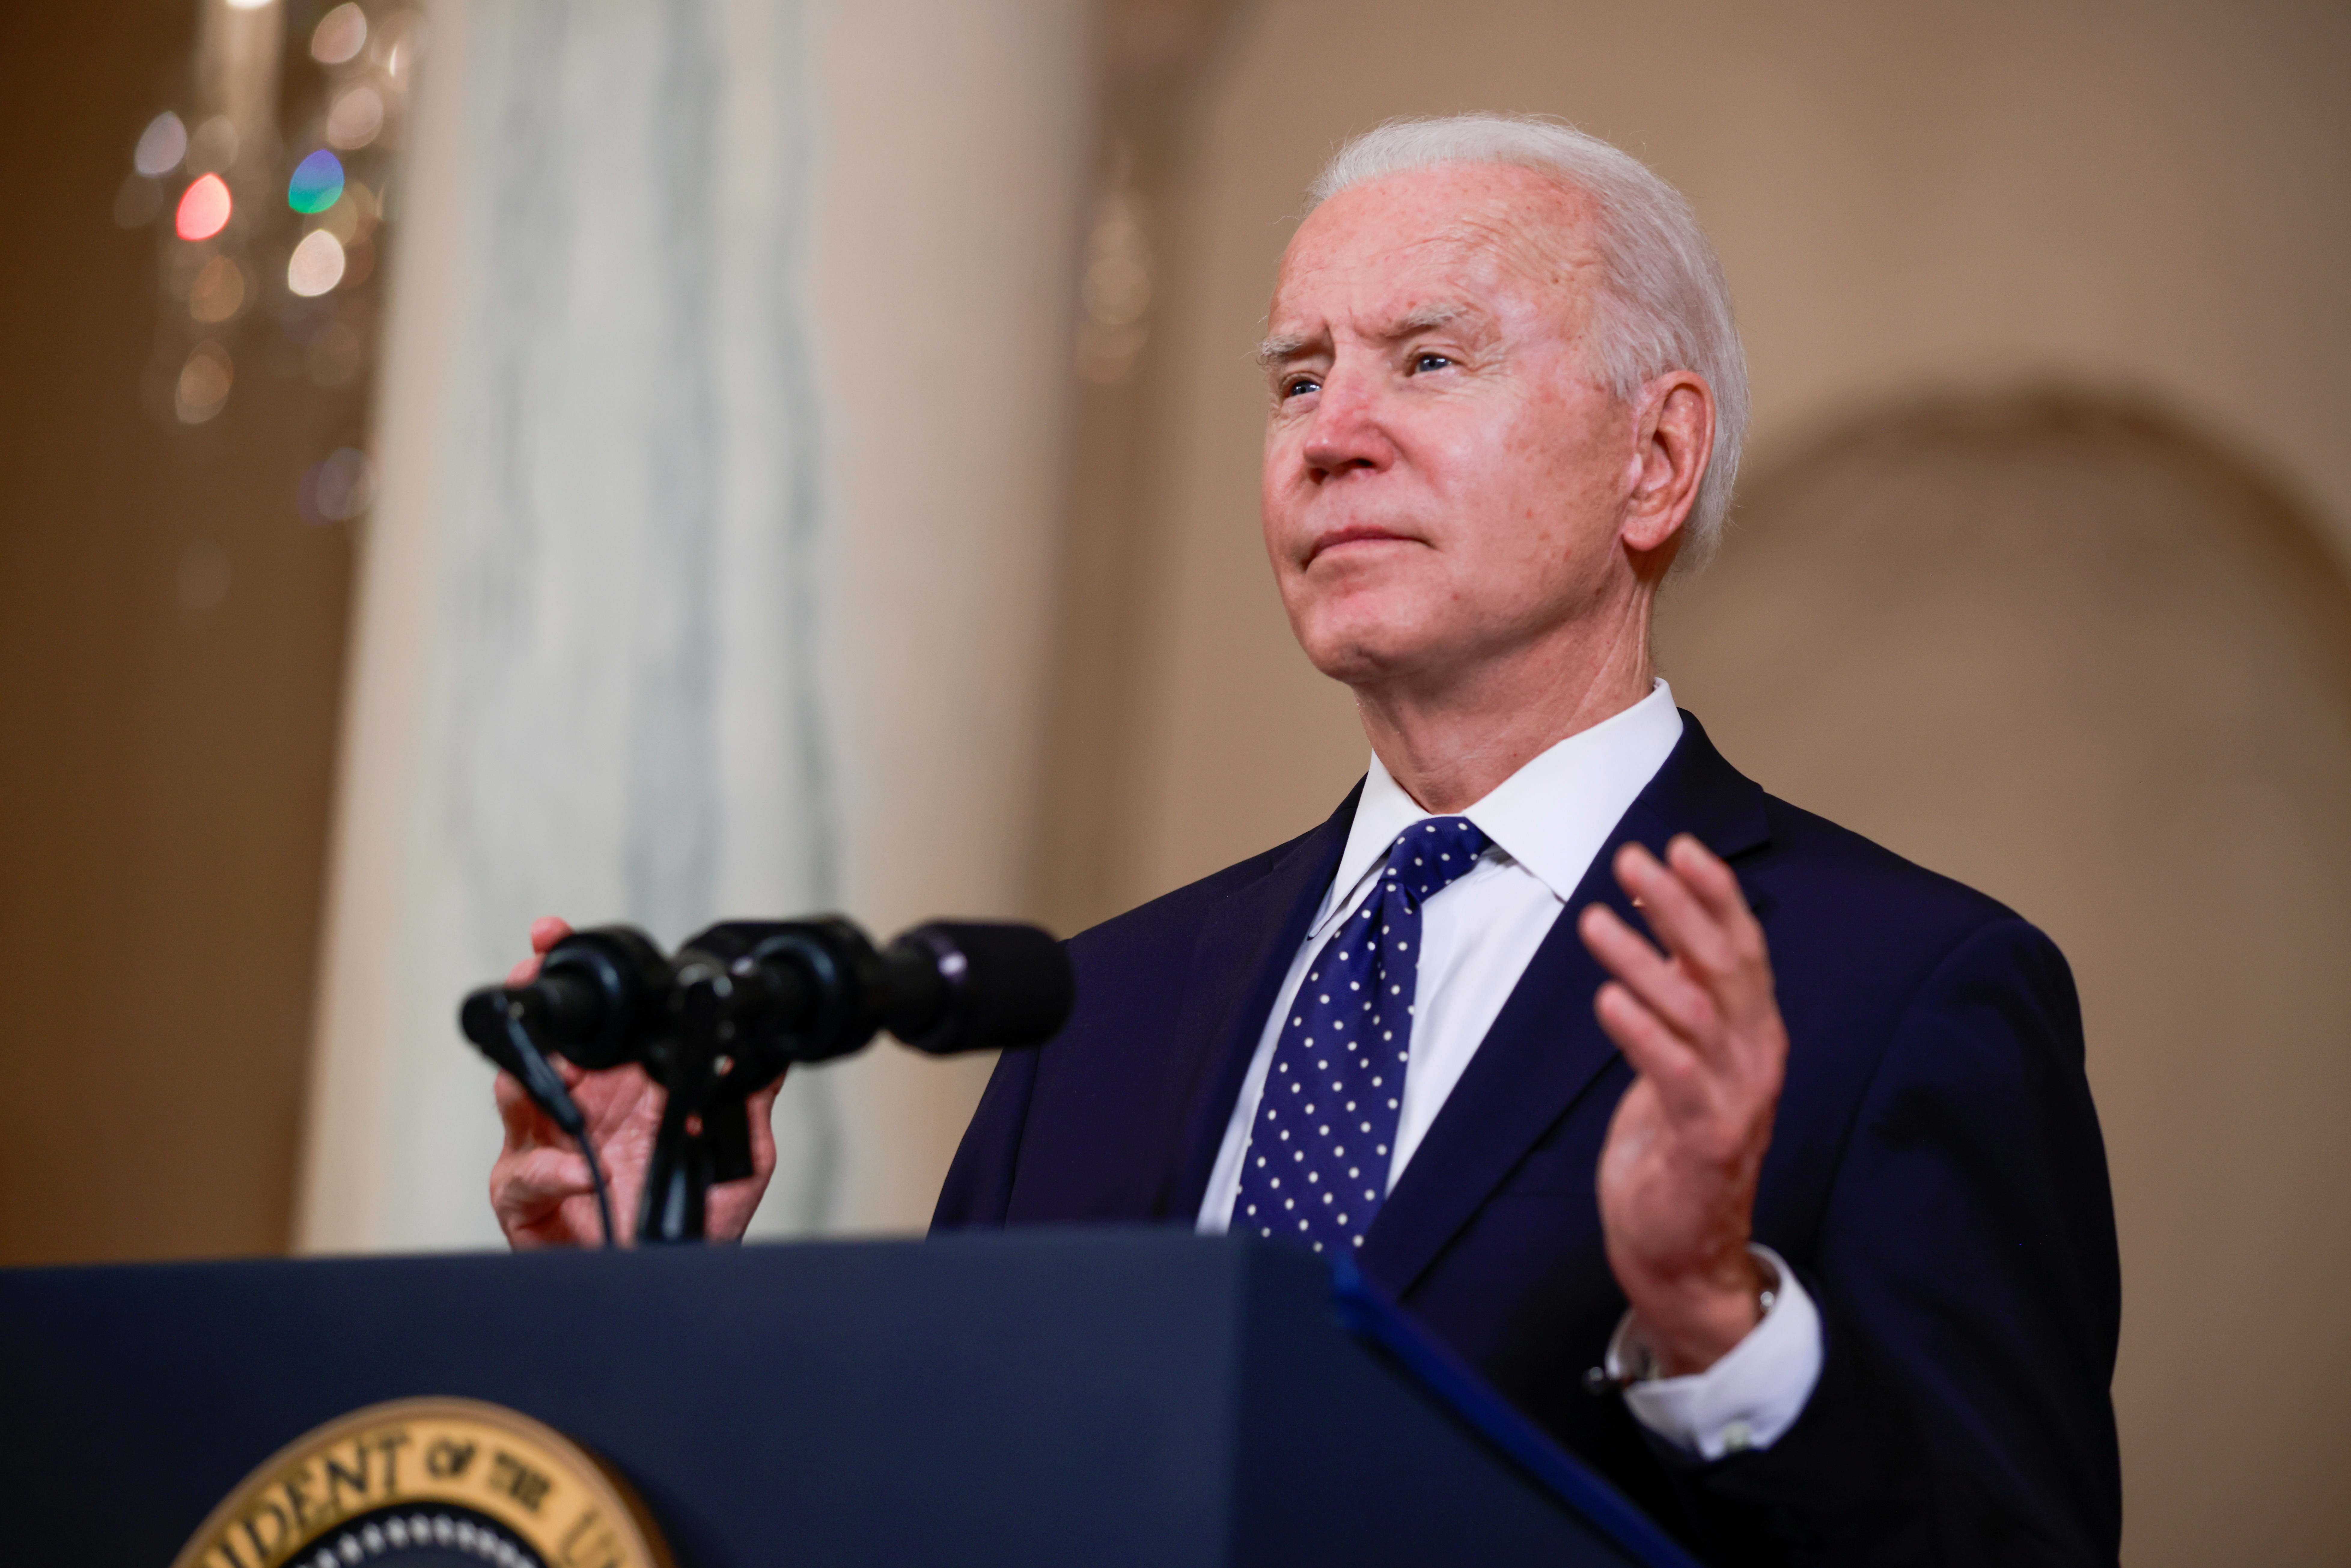 U.S. President Joe Biden speaks in the Cross Hall at the White House in Washington, U.S., April 20, 2021. REUTERS/Tom Brenner/File Photo